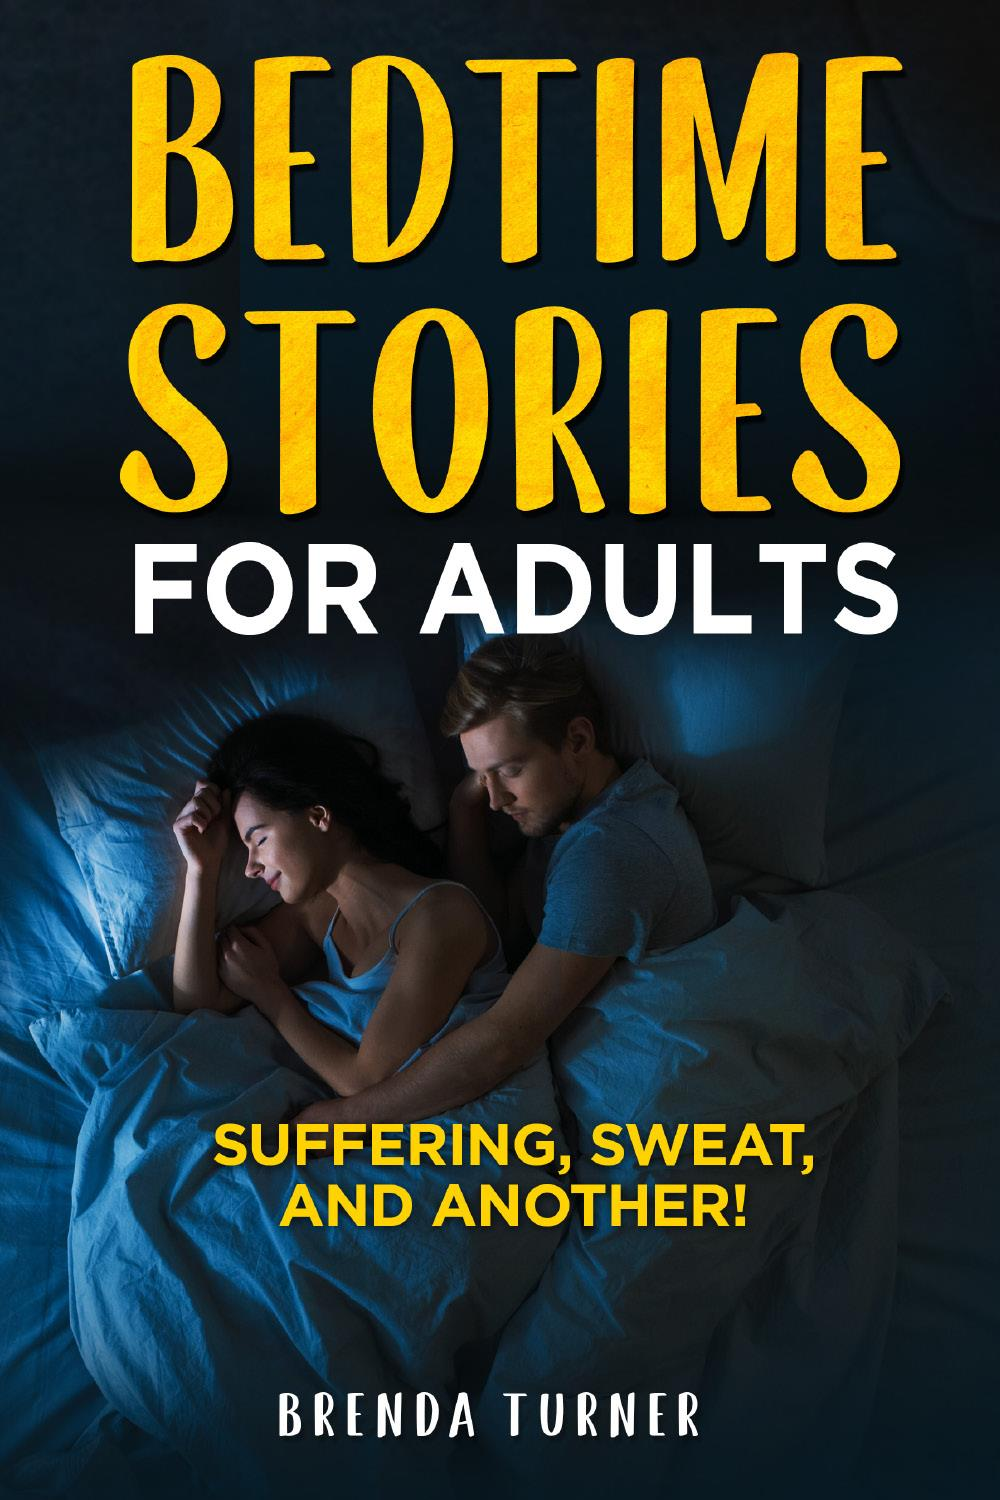 Bedtimes stories for adults. Suffering, Sweat, and another!